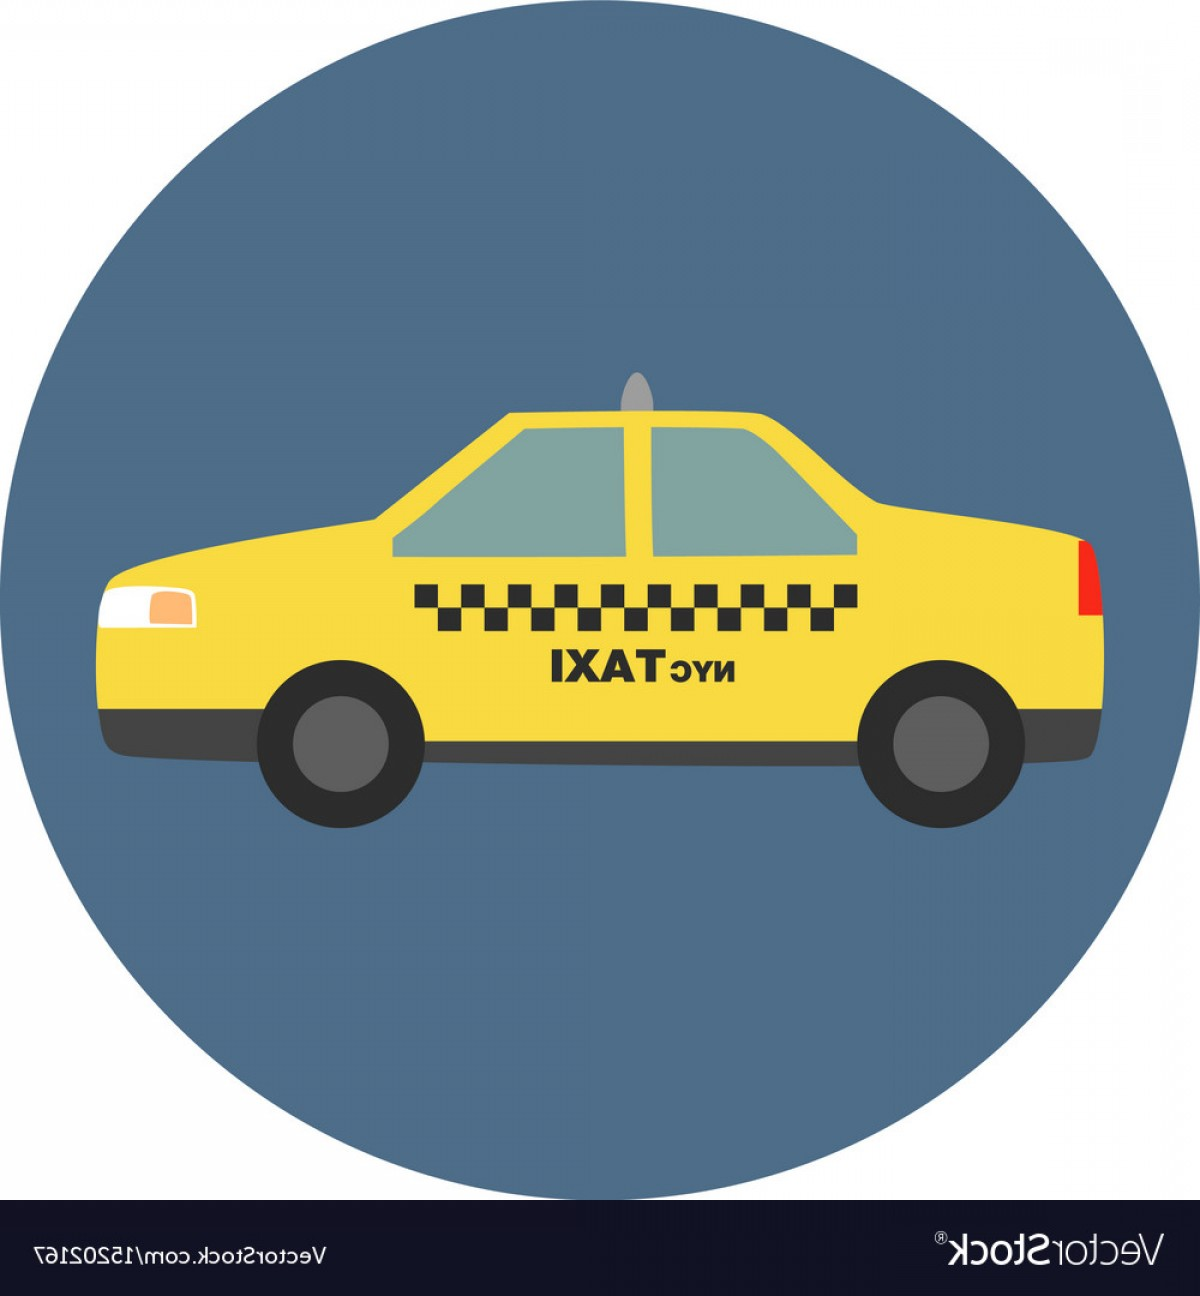 New York Taxi Cab Vector: New York City Taxi Vector